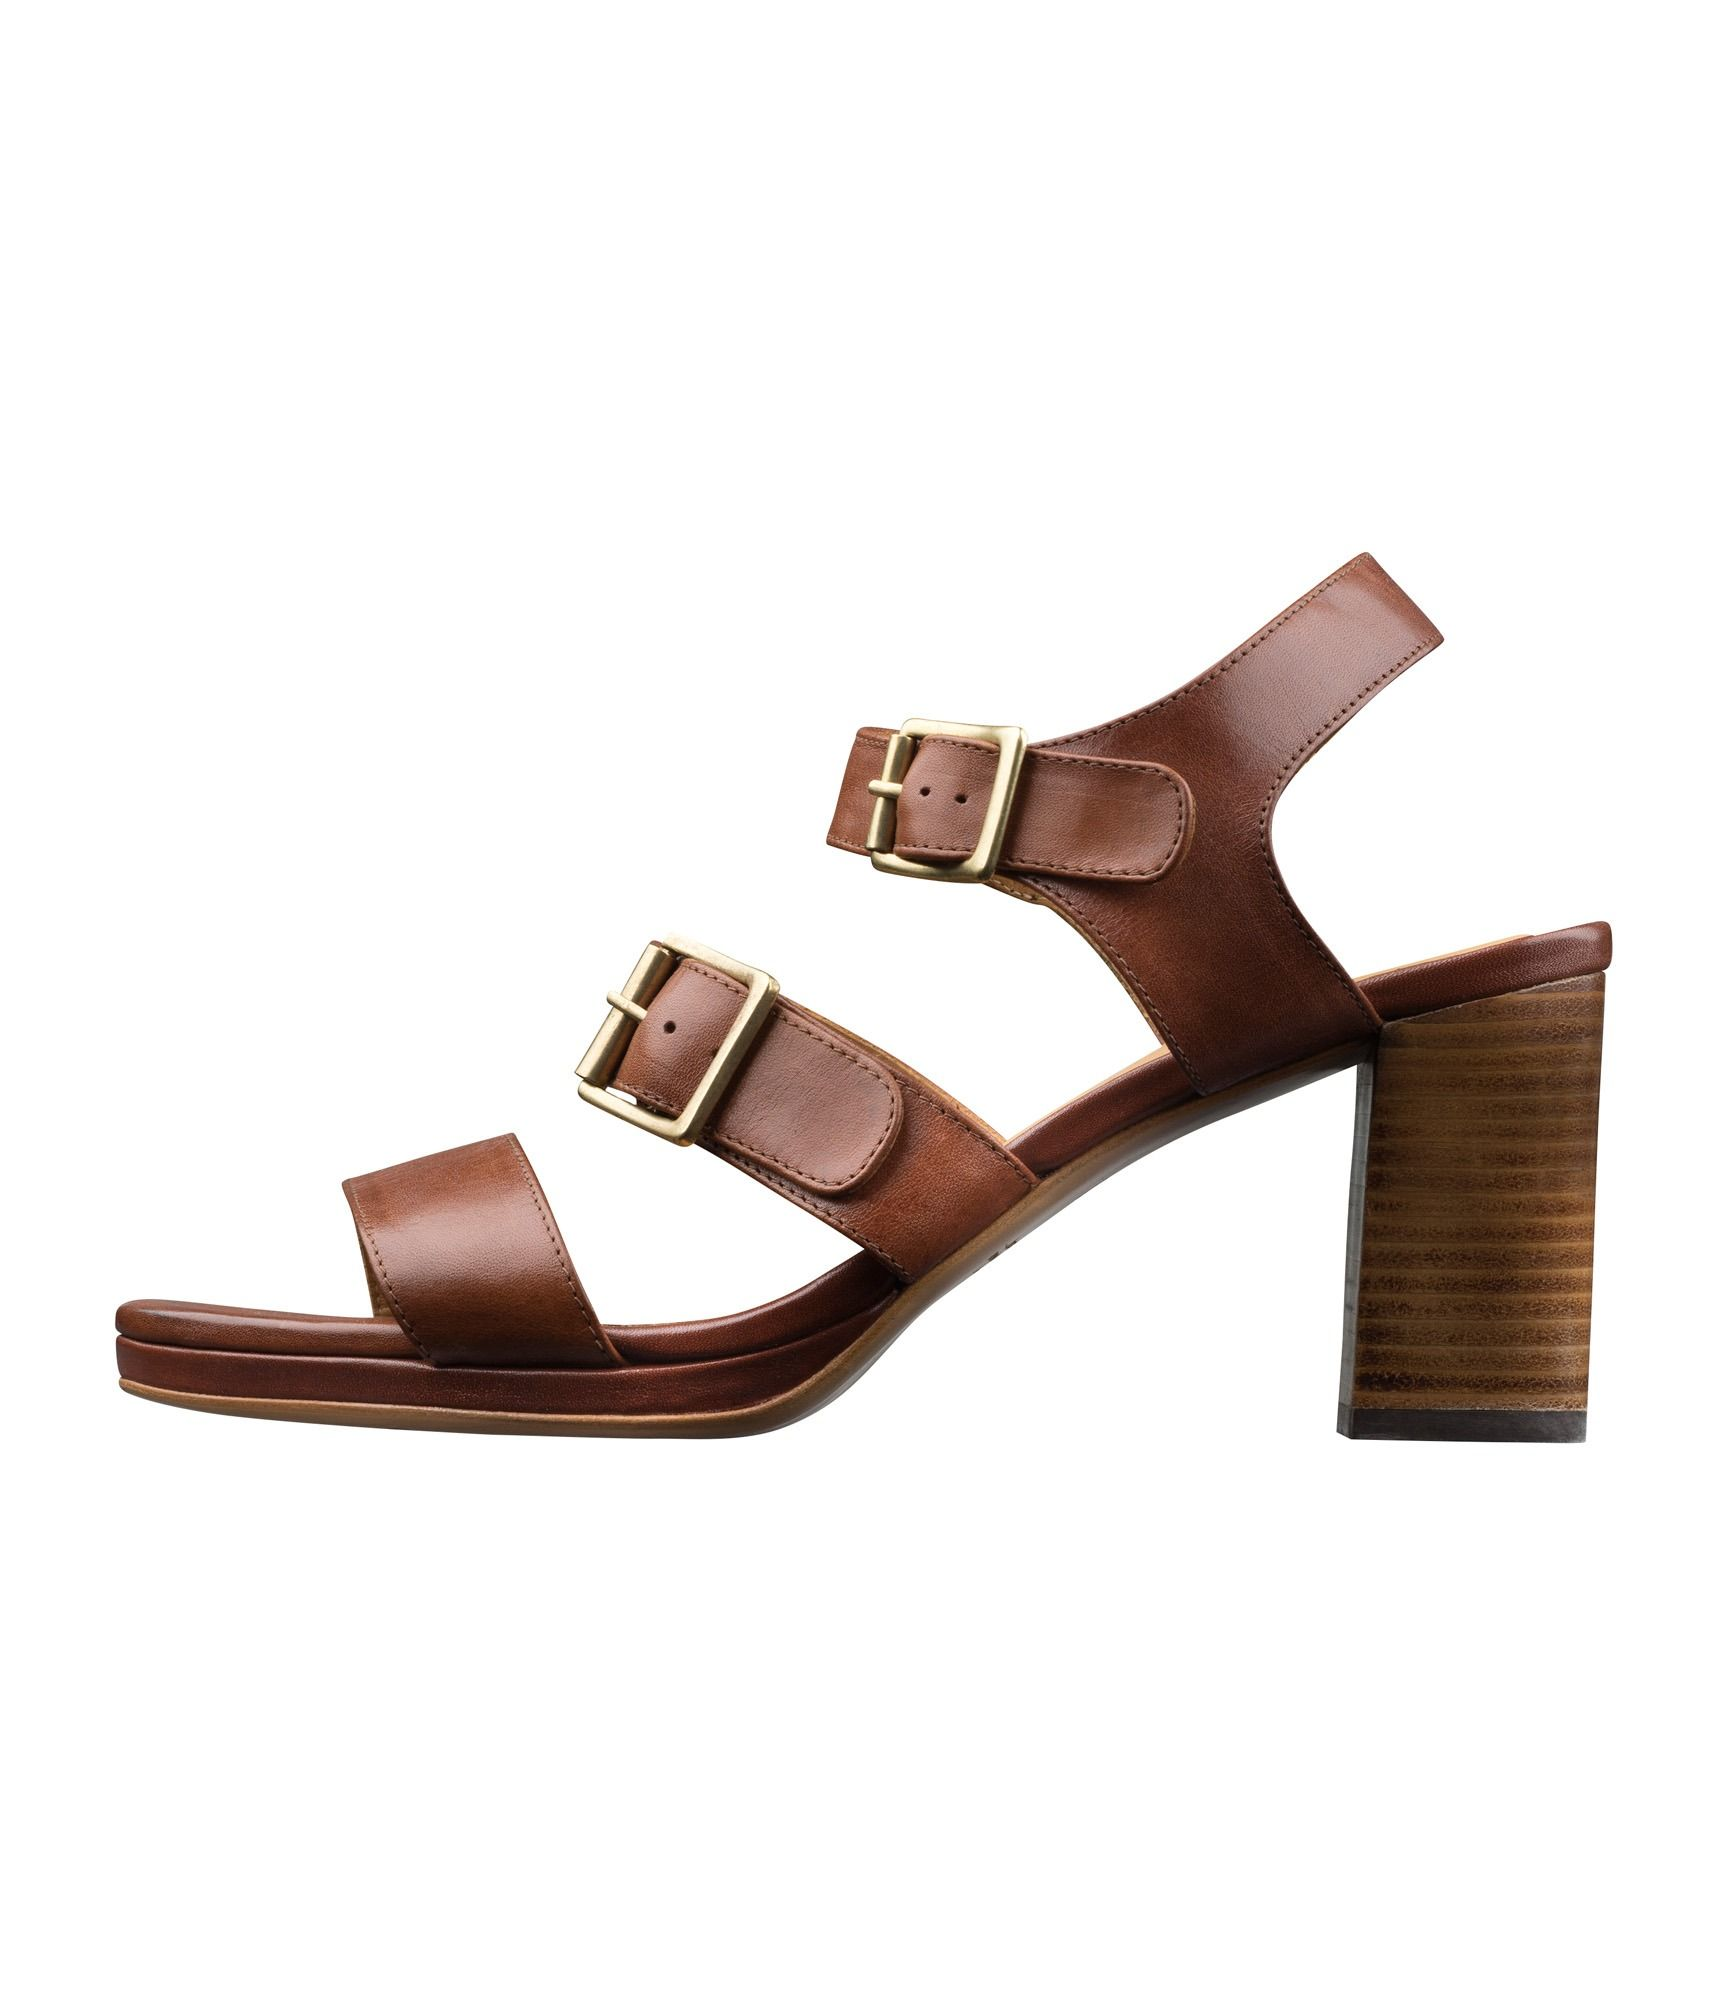 A.P.C. BETSY SANDALS F/W 15